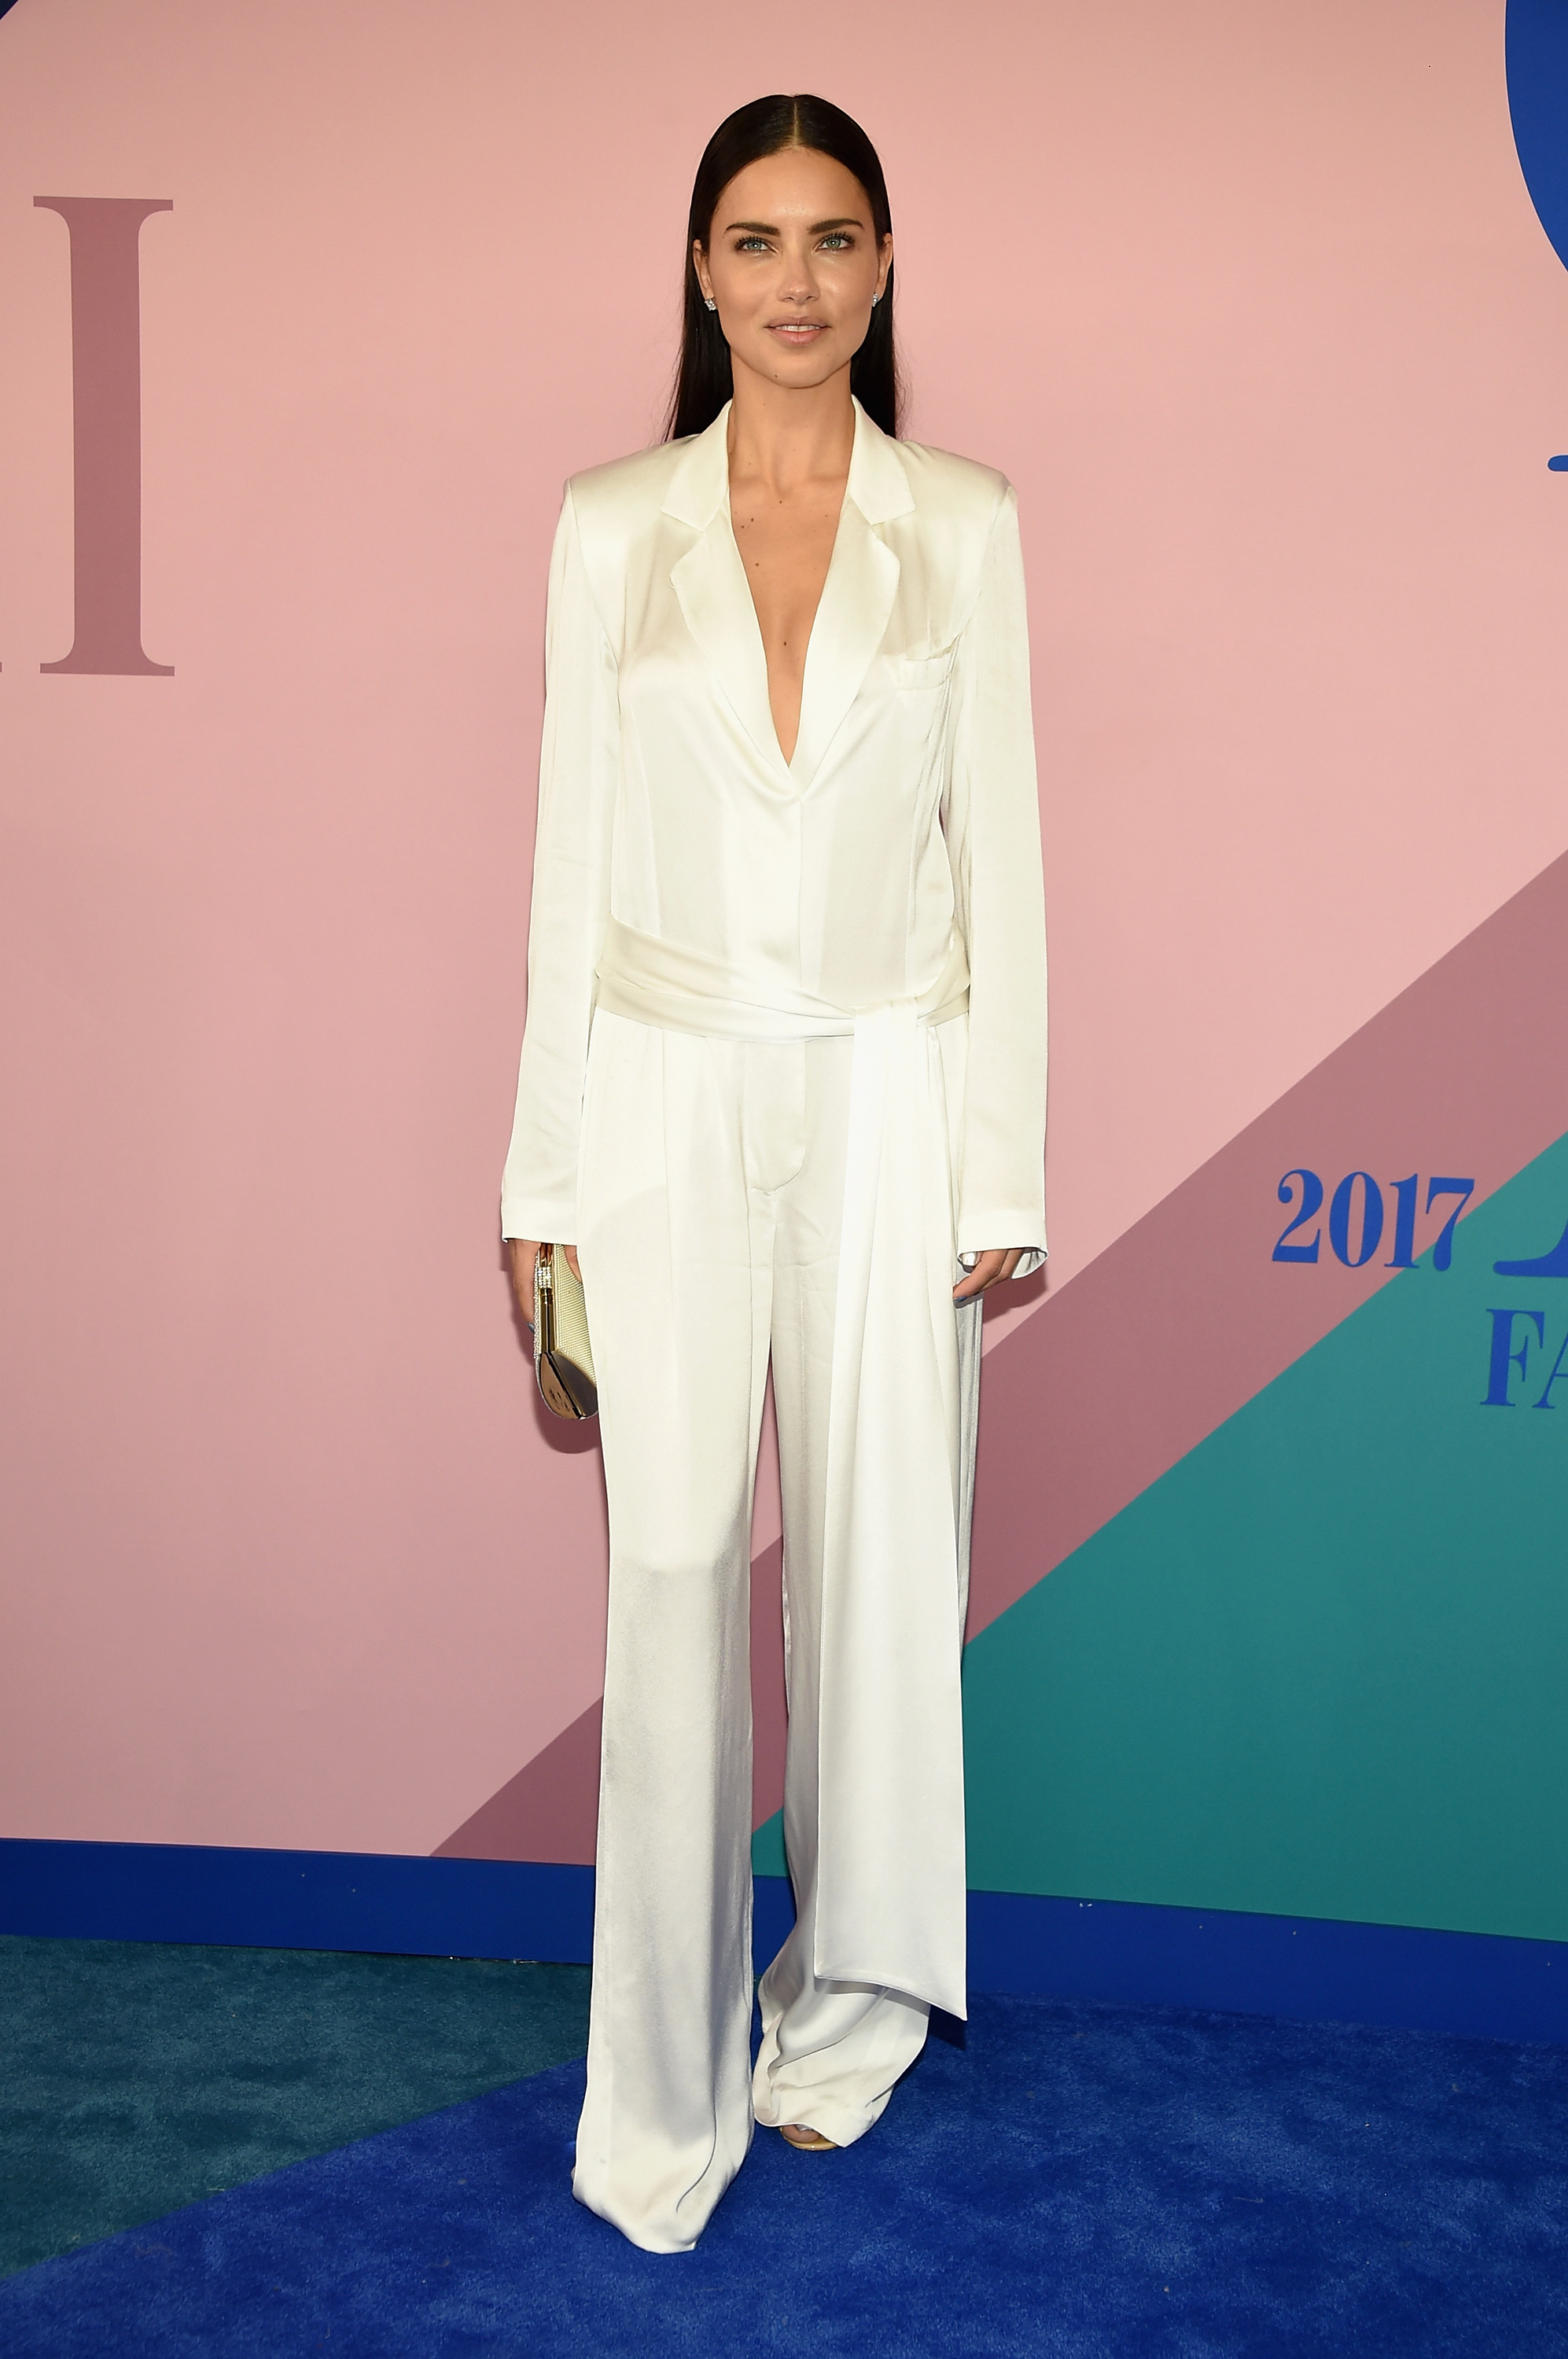 NEW YORK, NY - JUNE 05:  Model Adriana Lima attends the 2017 CFDA Fashion Awards at Hammerstein Ballroom on June 5, 2017 in New York City.  (Photo by Dimitrios Kambouris/Getty Images)